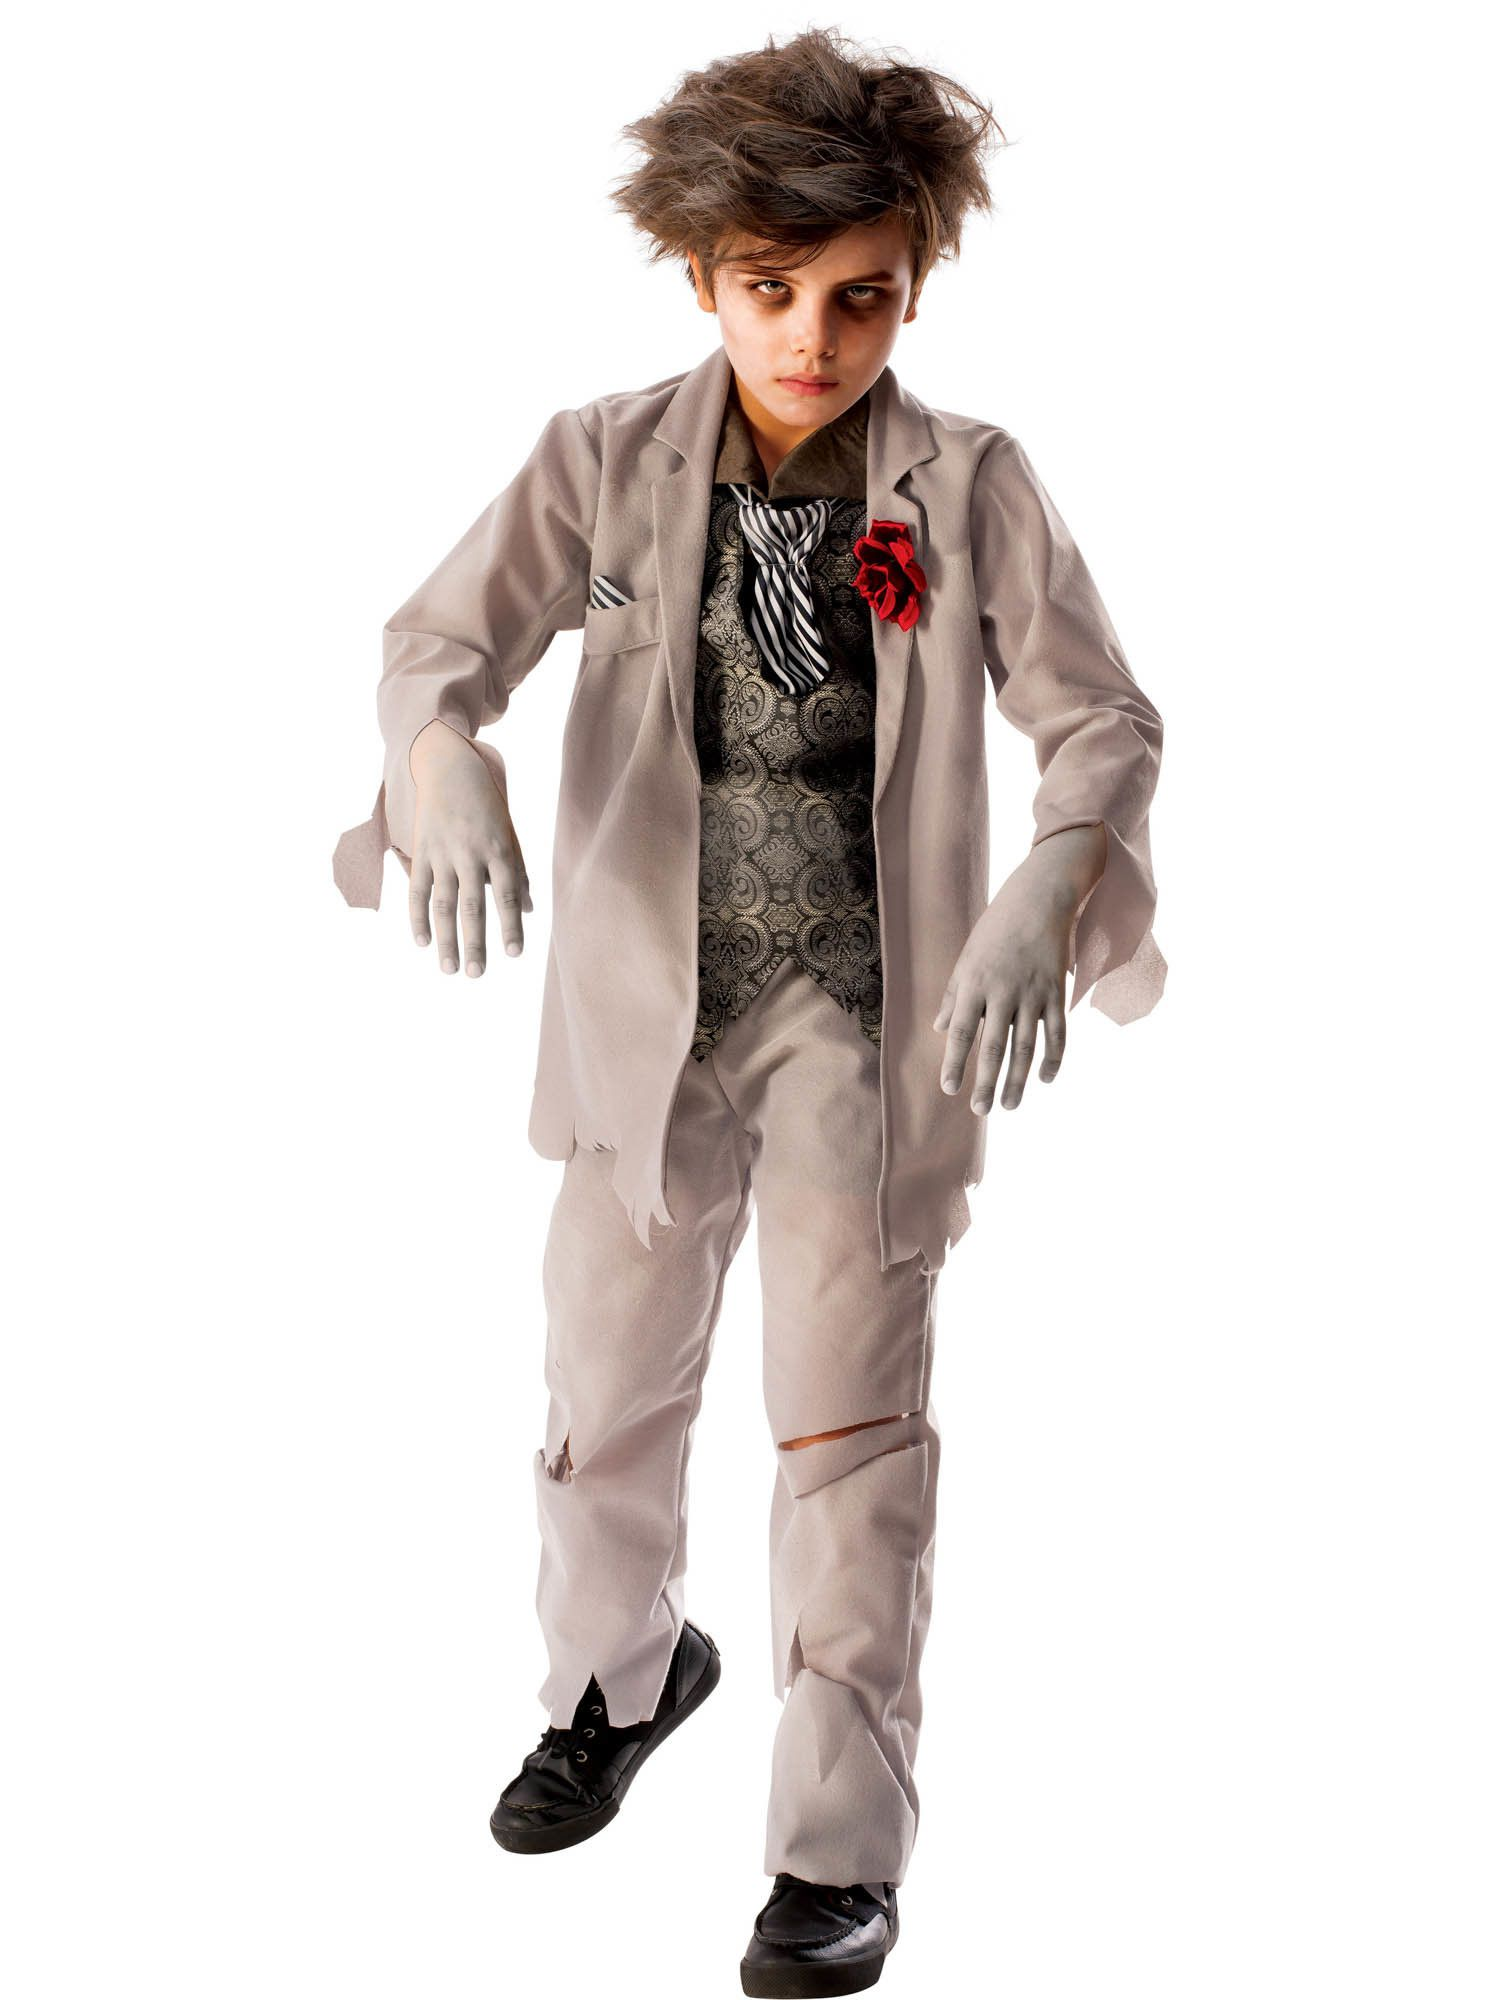 Ghost Groom Boys Costume  sc 1 st  Wholesale Halloween Costumes & Ghost Groom Boys Costume - Boys Costumes for 2018 | Wholesale ...